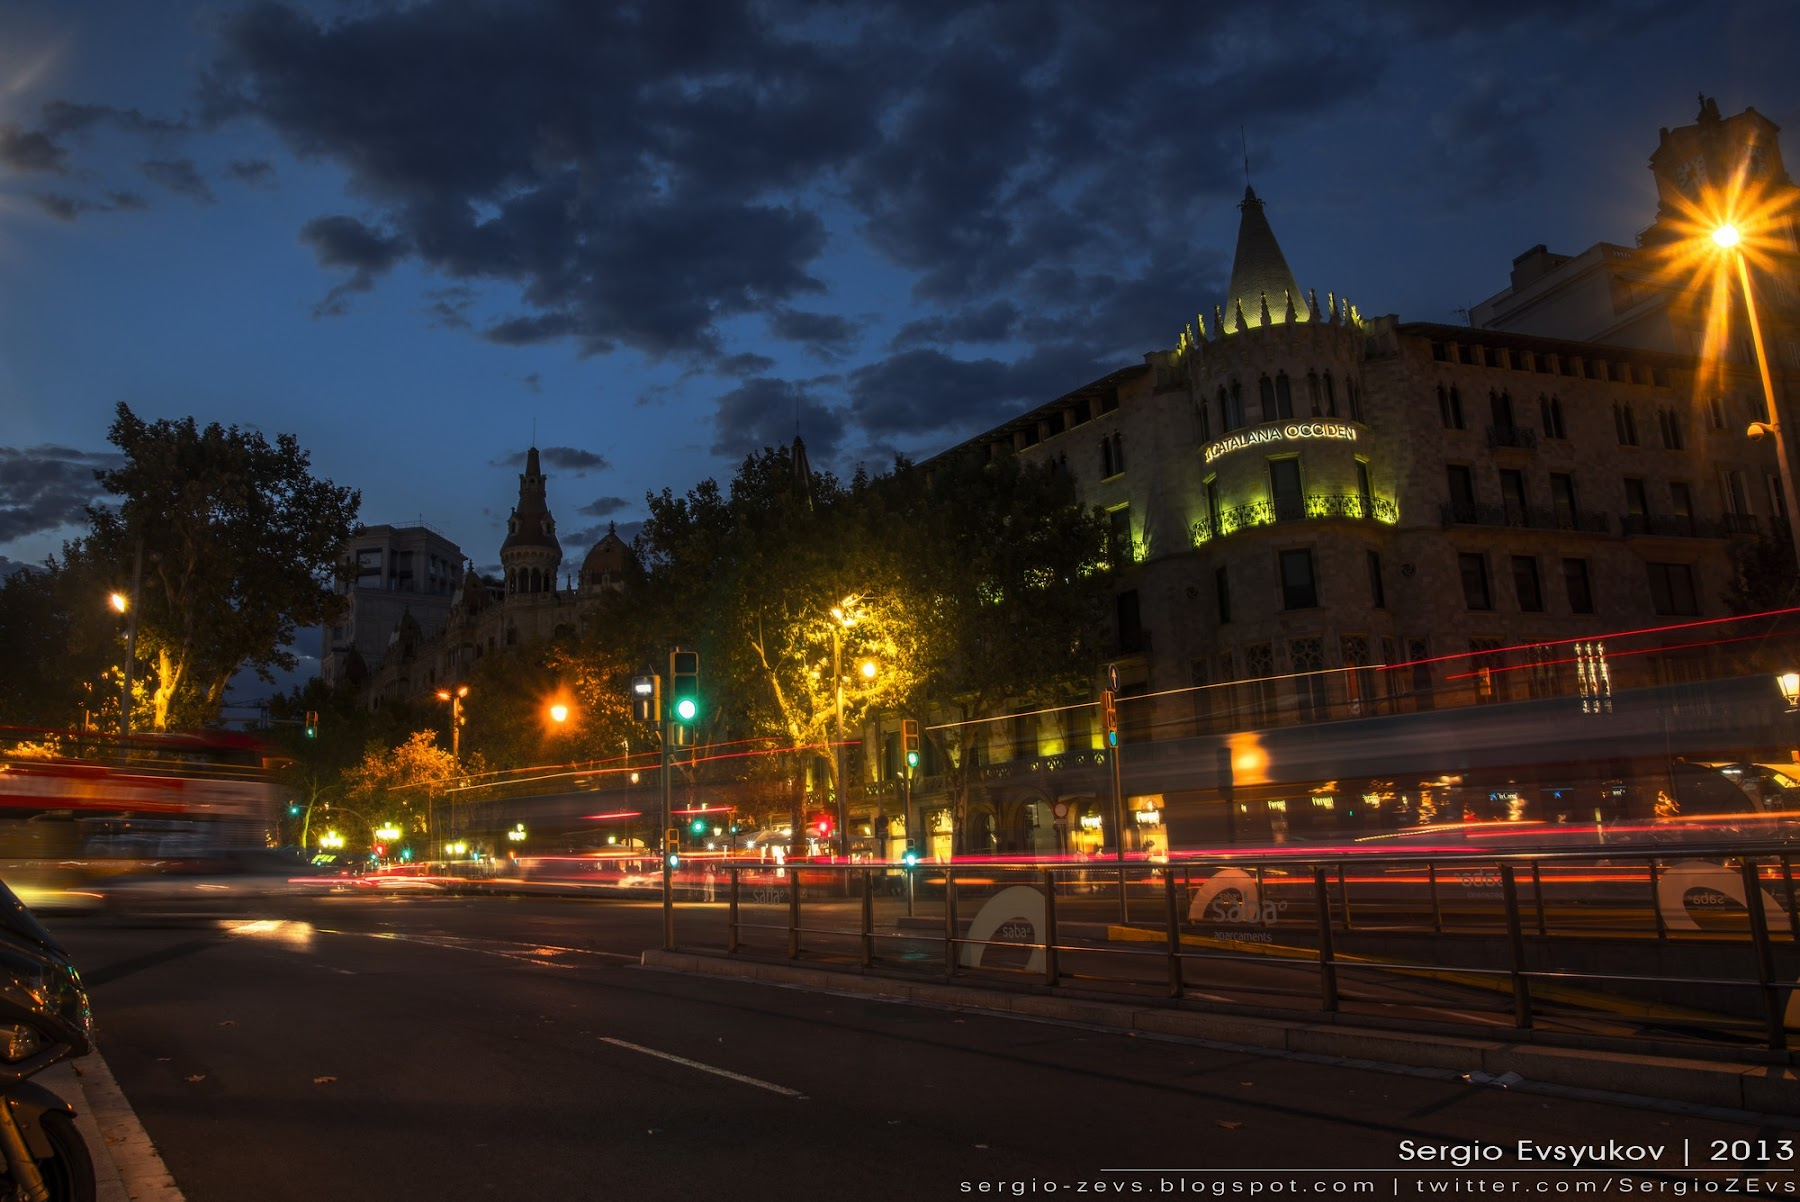 Barcelona's night